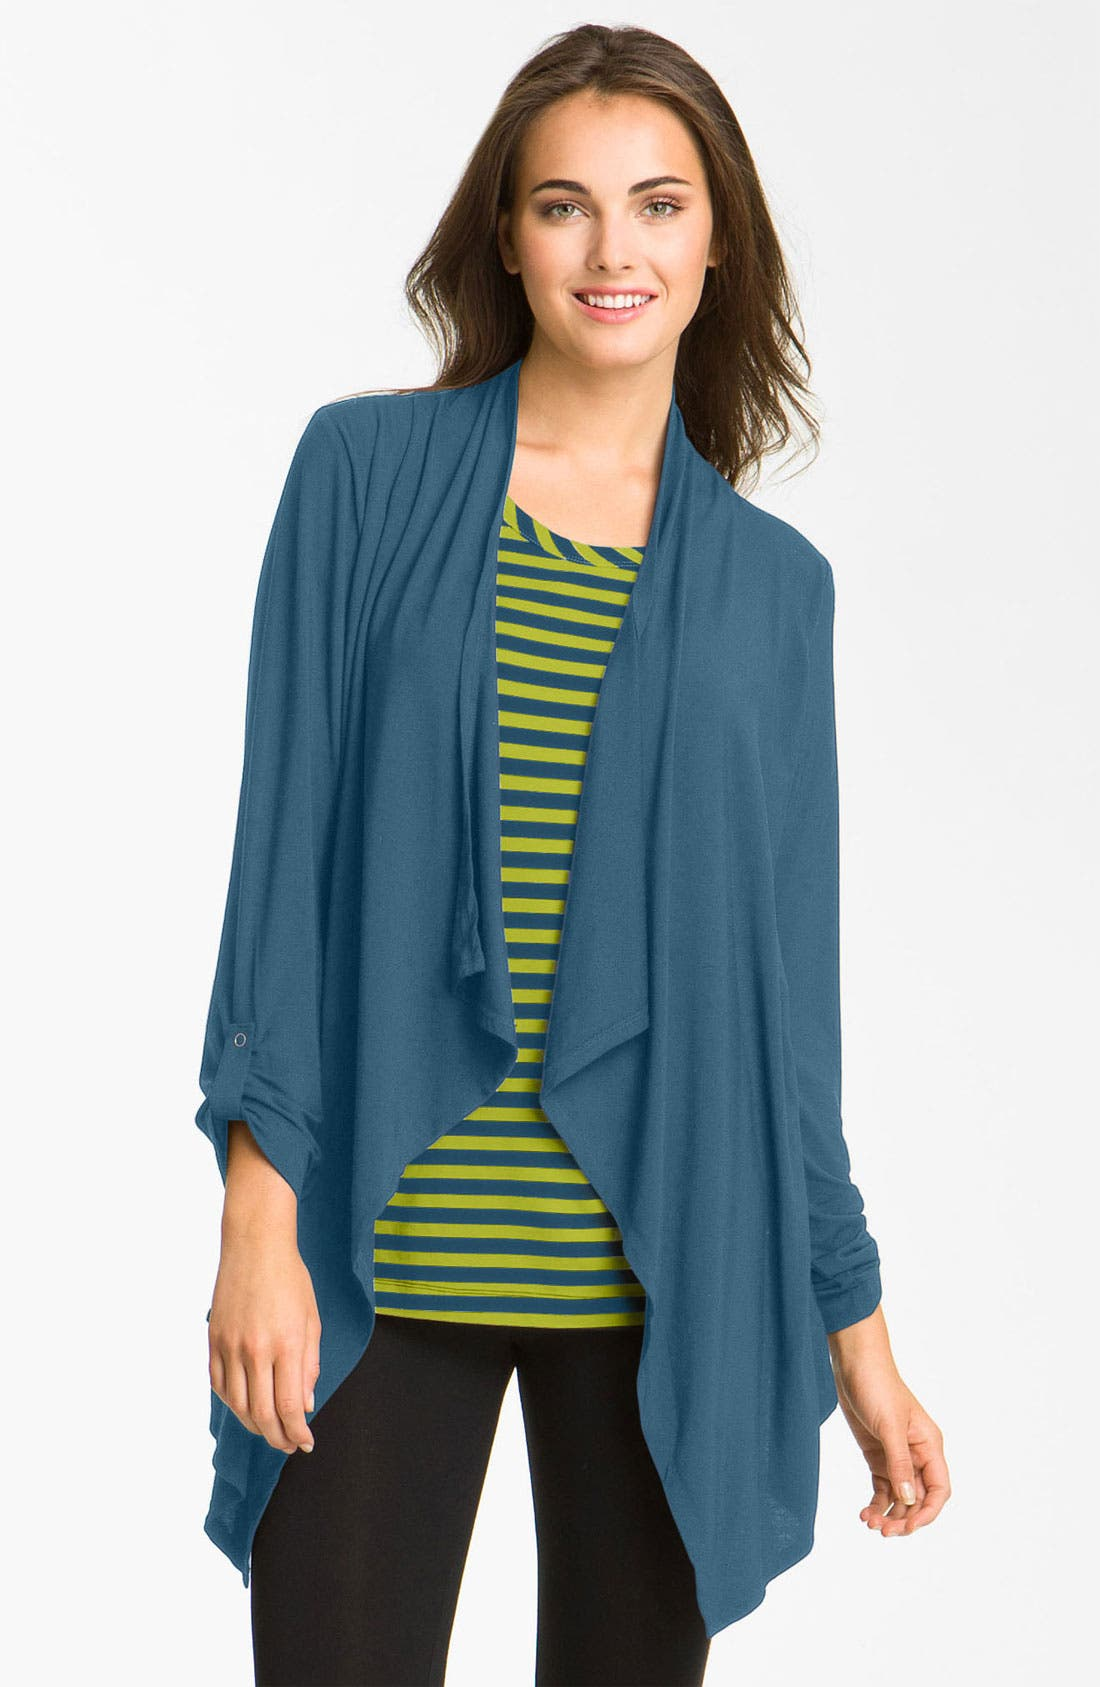 Alternate Image 1 Selected - DKNY 'Effortlessly' Layered Look Top